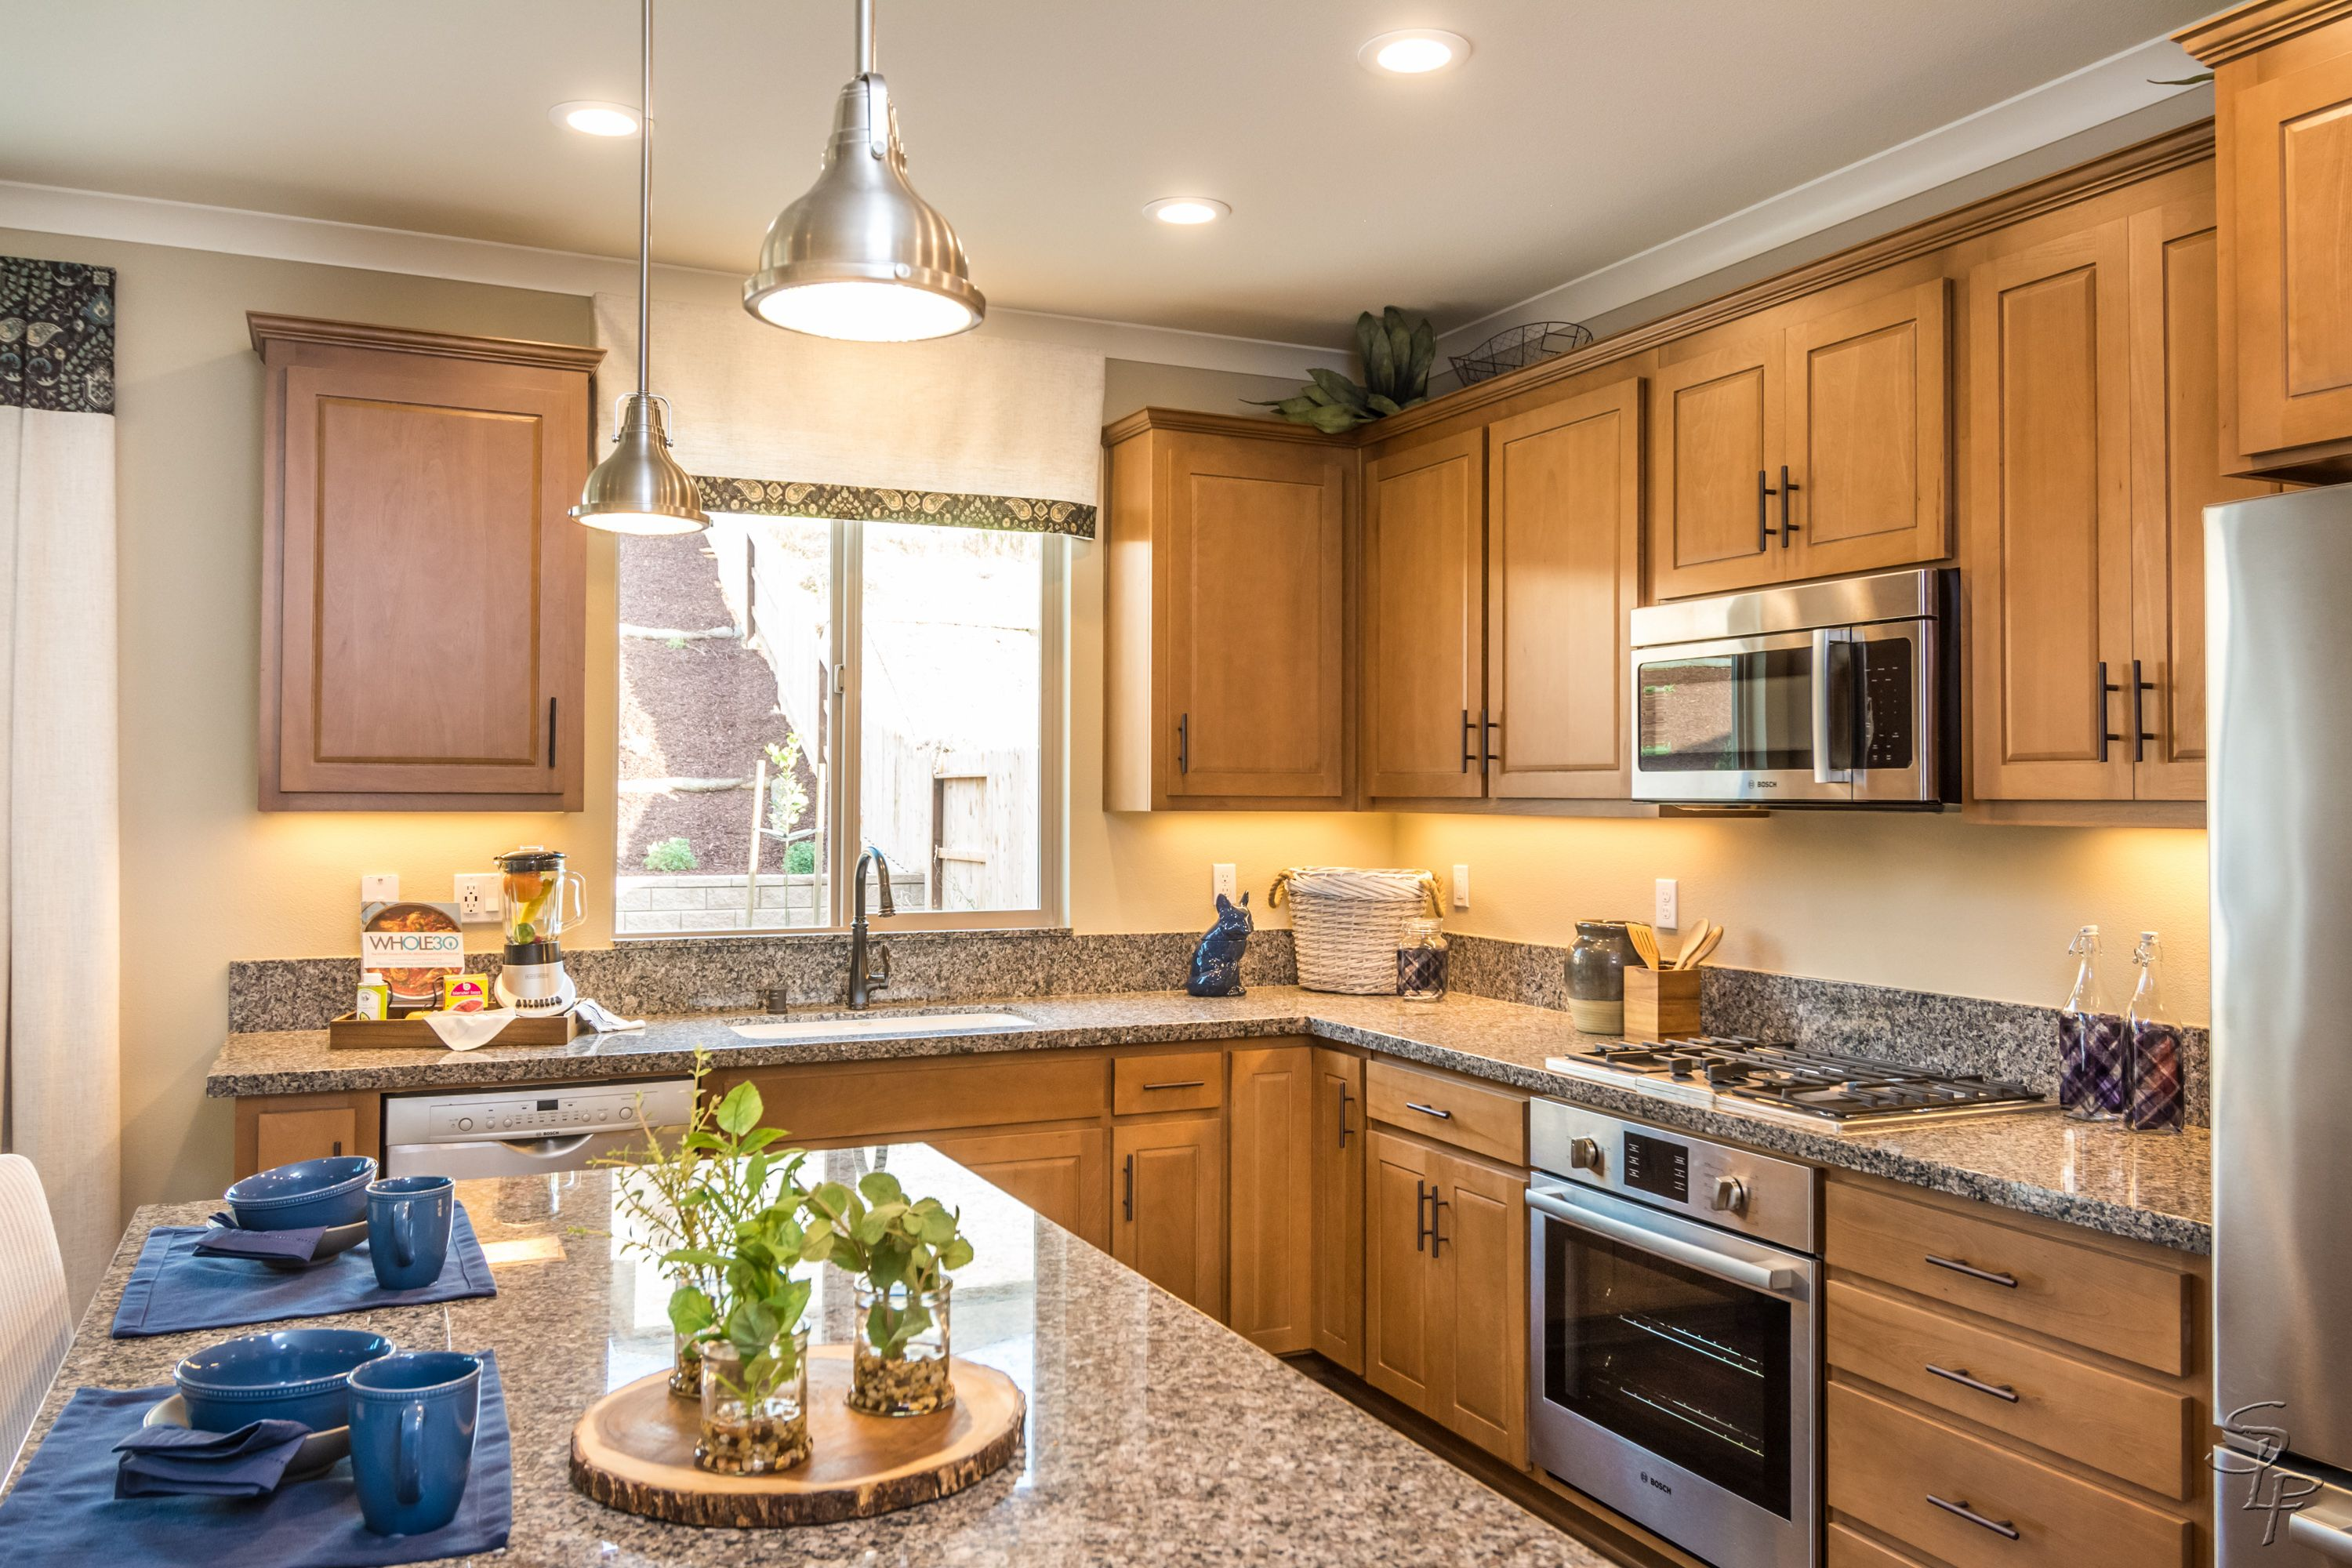 Kitchen featured in The Capitola By Anderson Homes in Santa Cruz, CA